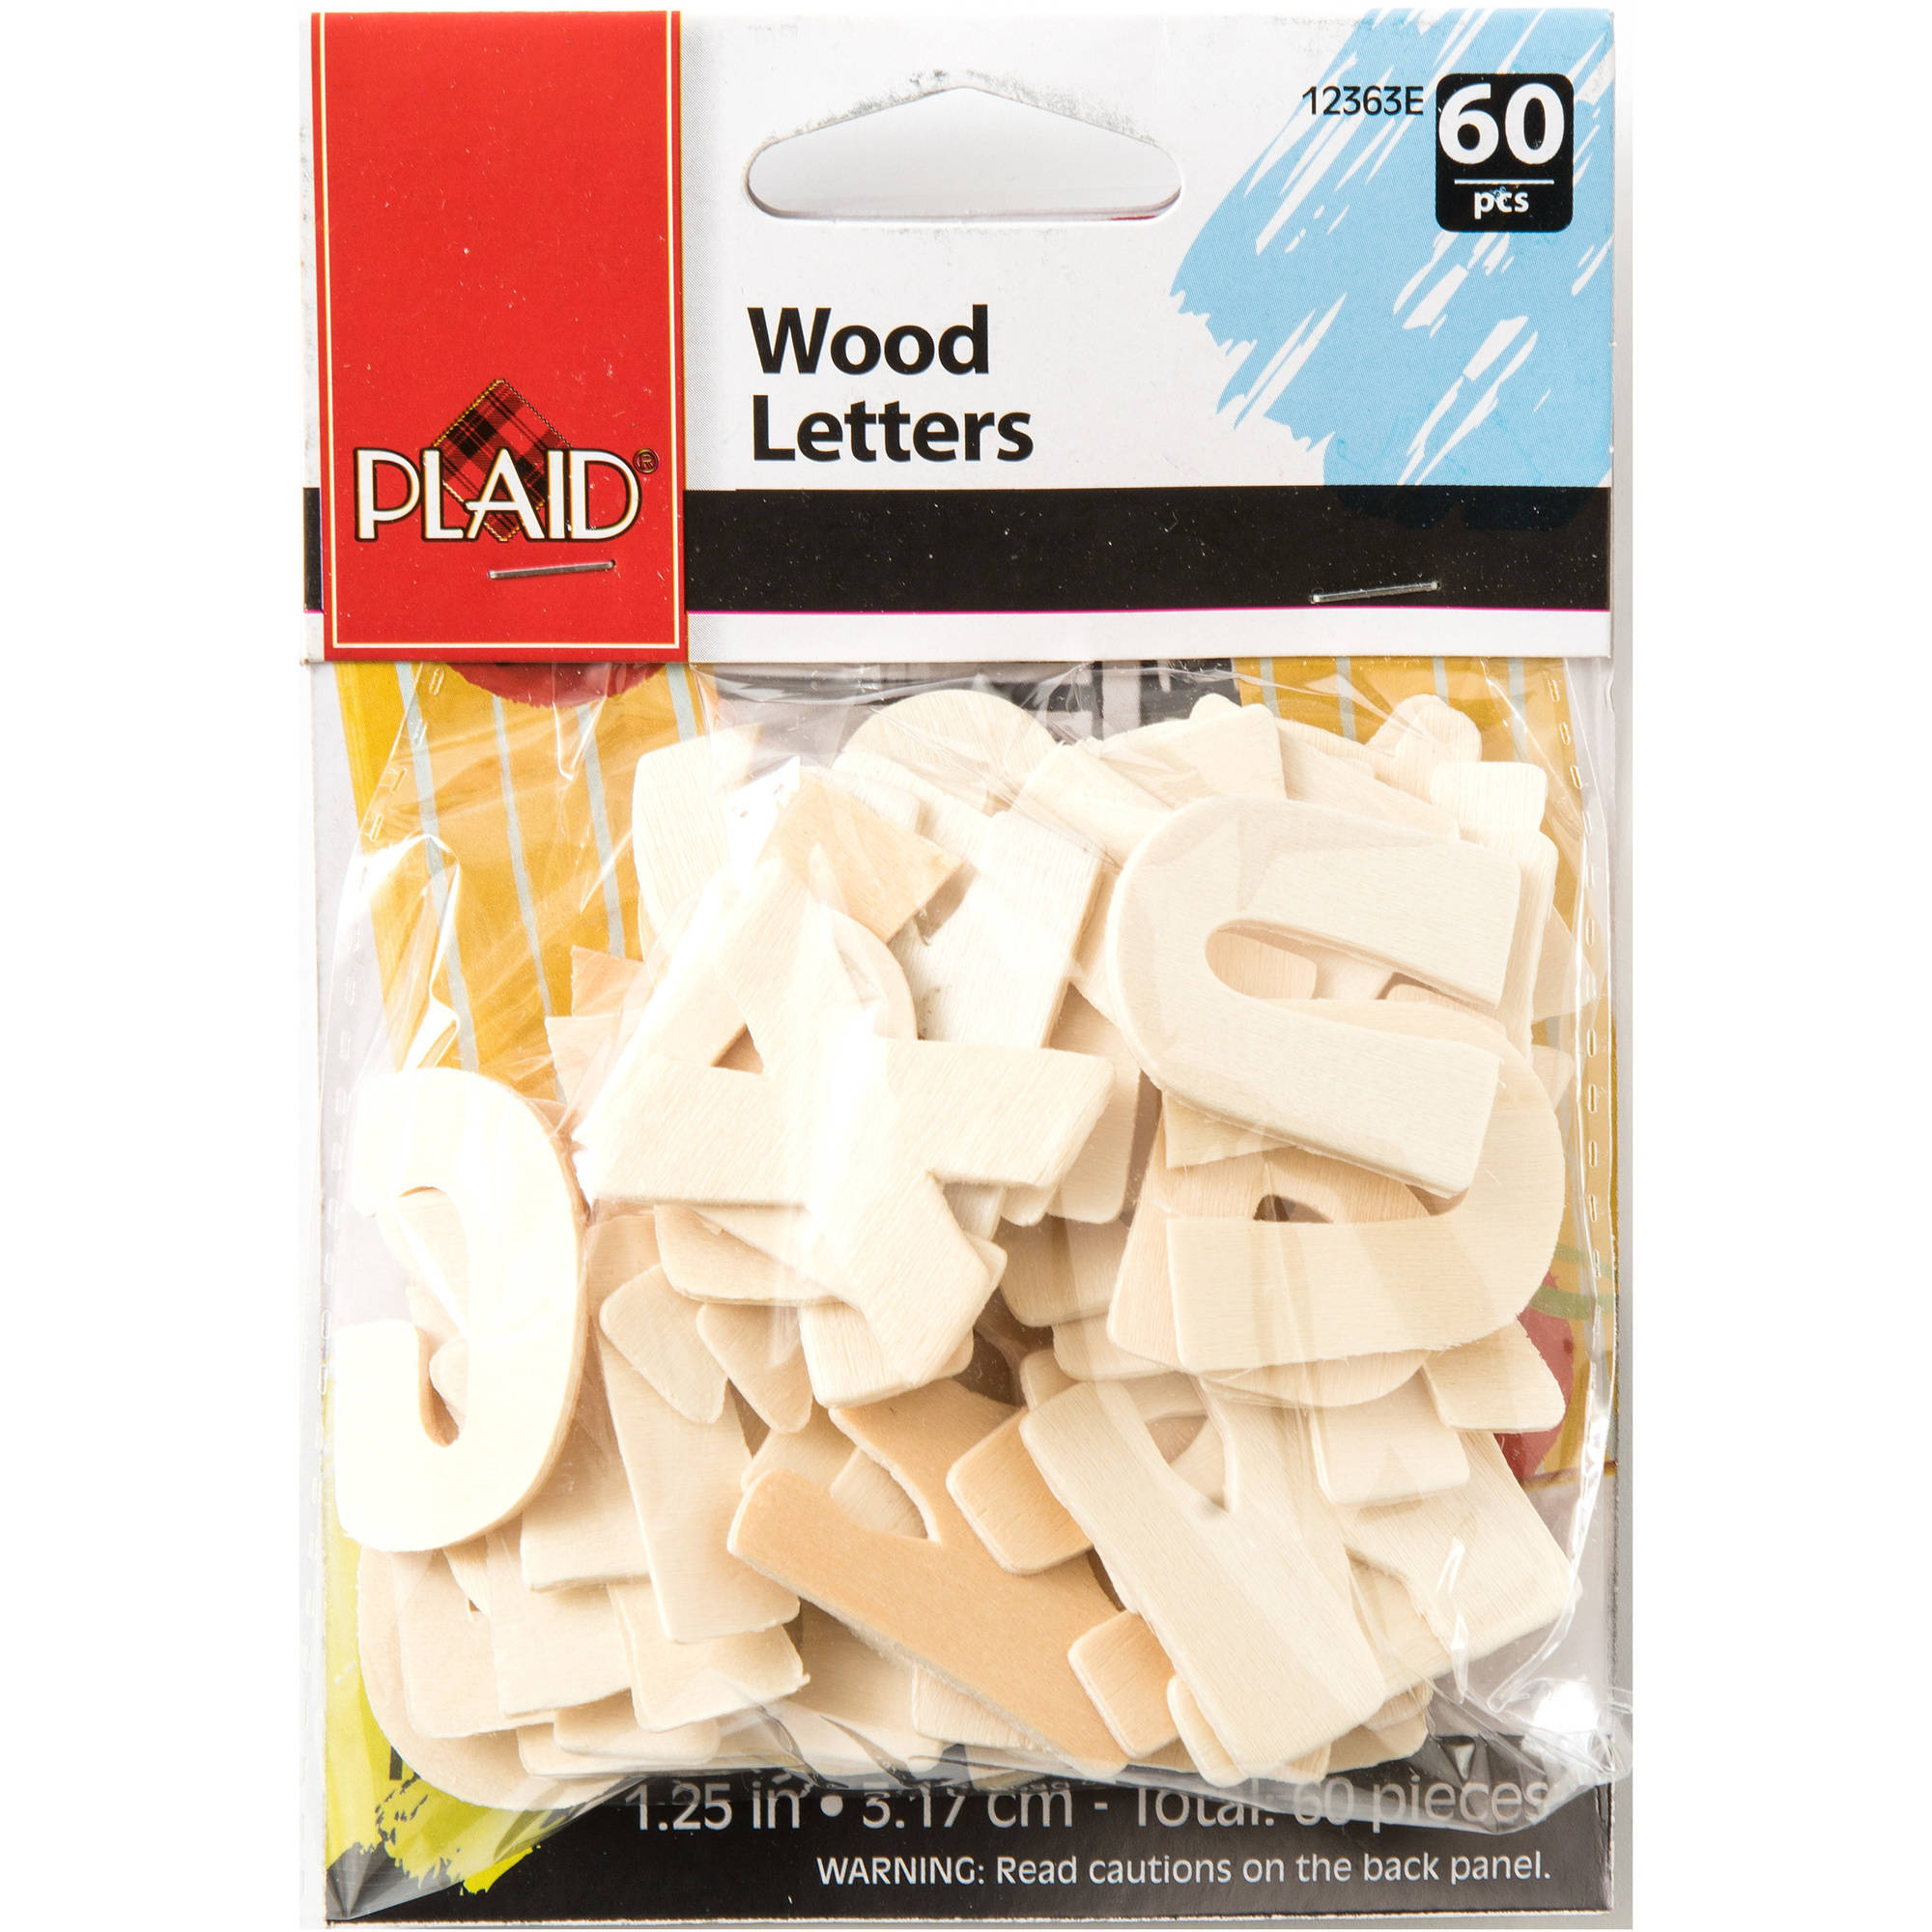 Plaid Wood Bold Letter Pack, 60 pieces